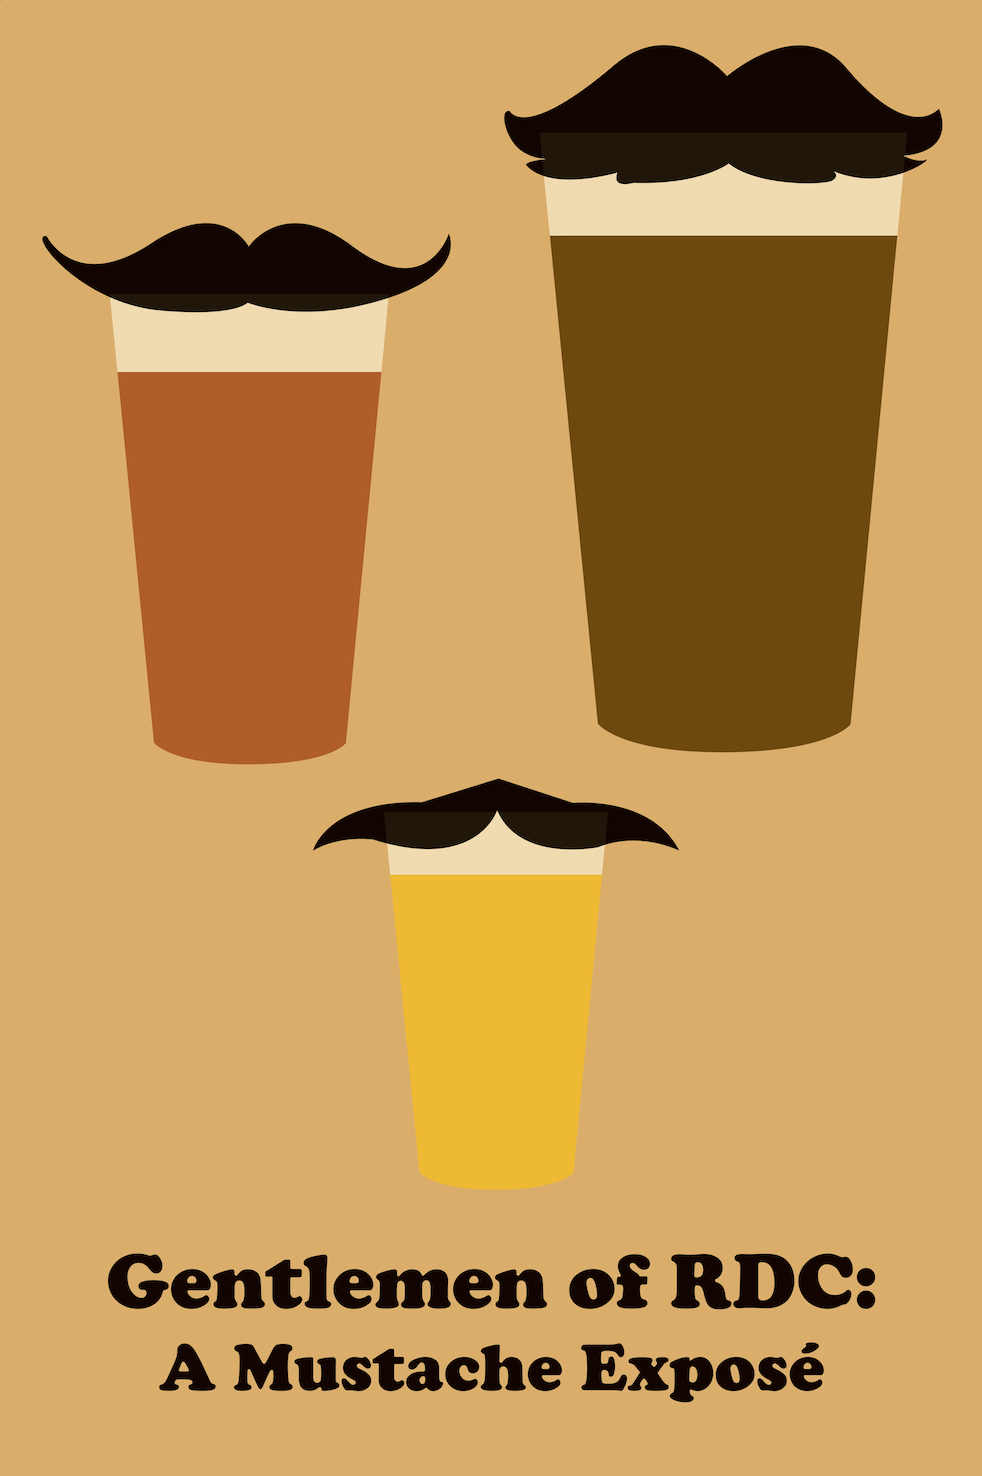 stache.png